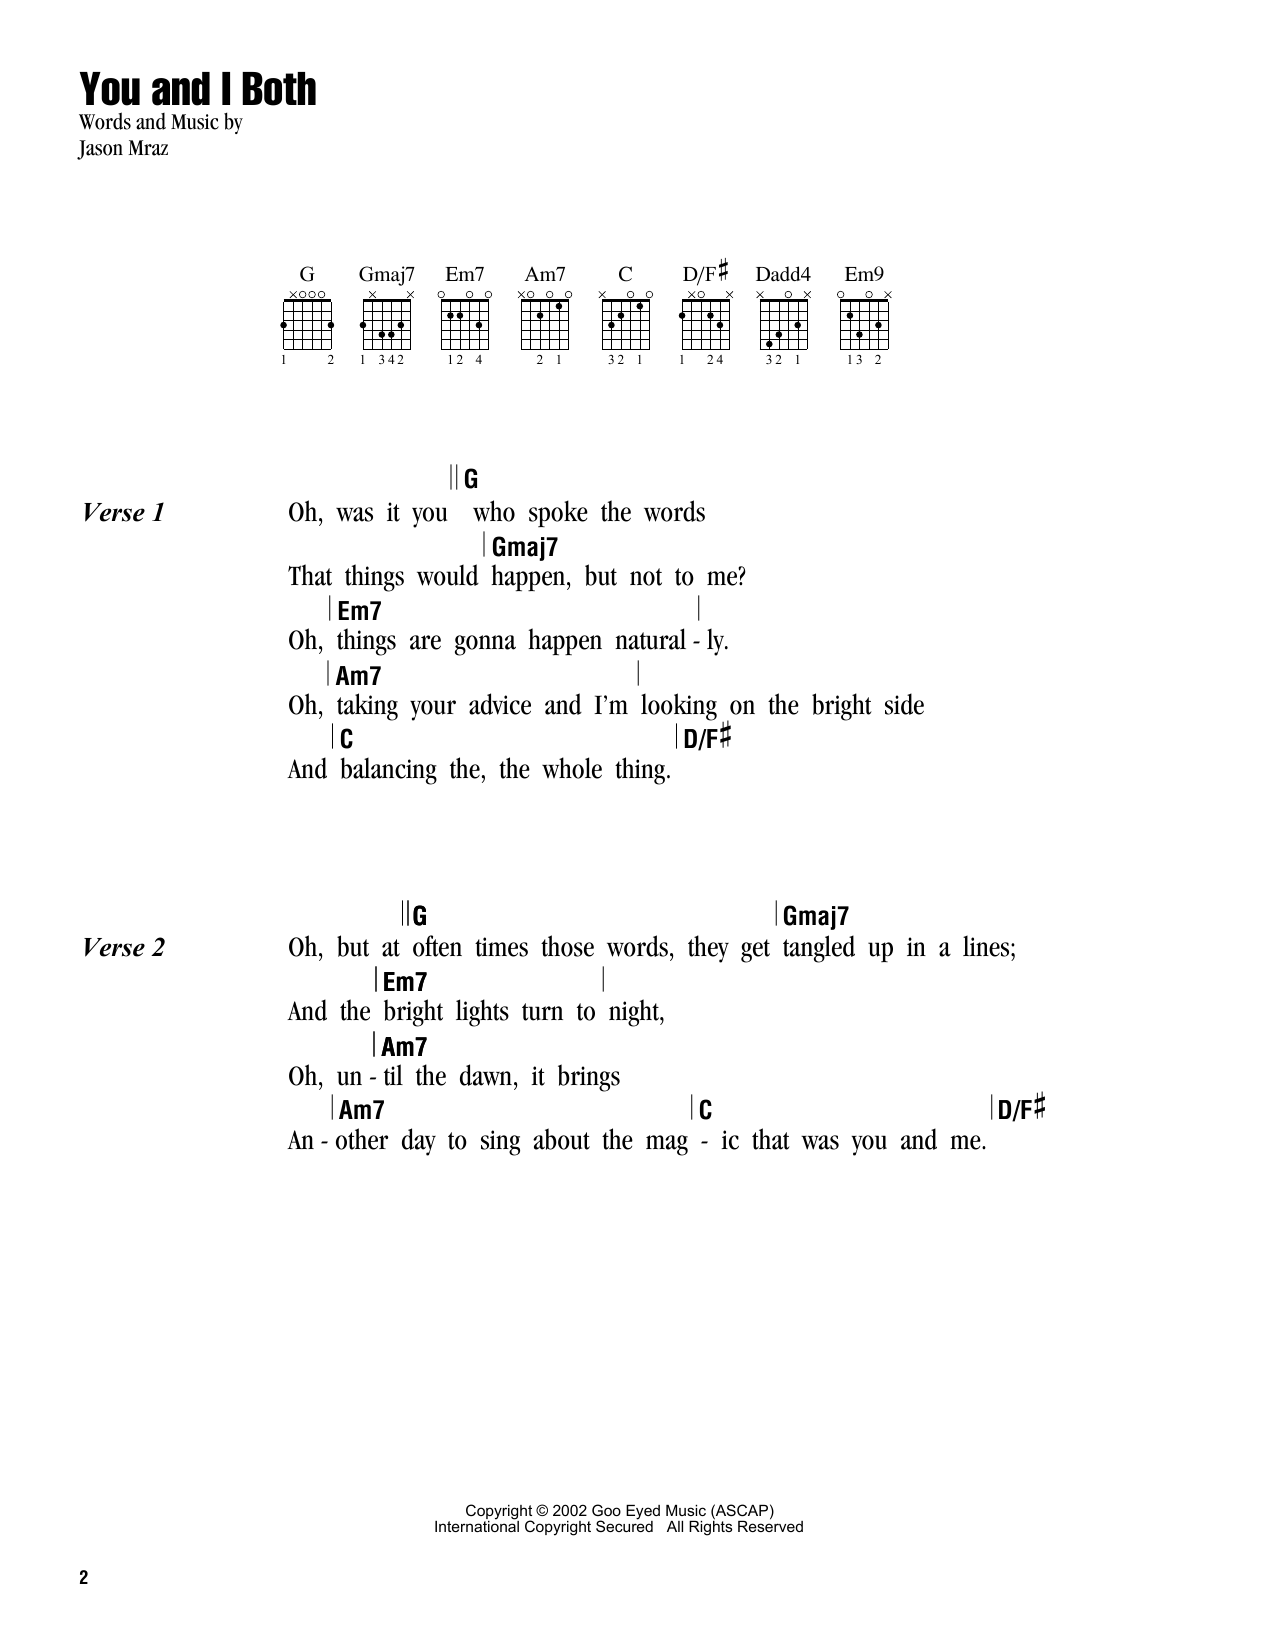 You and i both sheet music by jason mraz lyrics chords 162808 jason mraz you and i both lyrics chords hexwebz Images